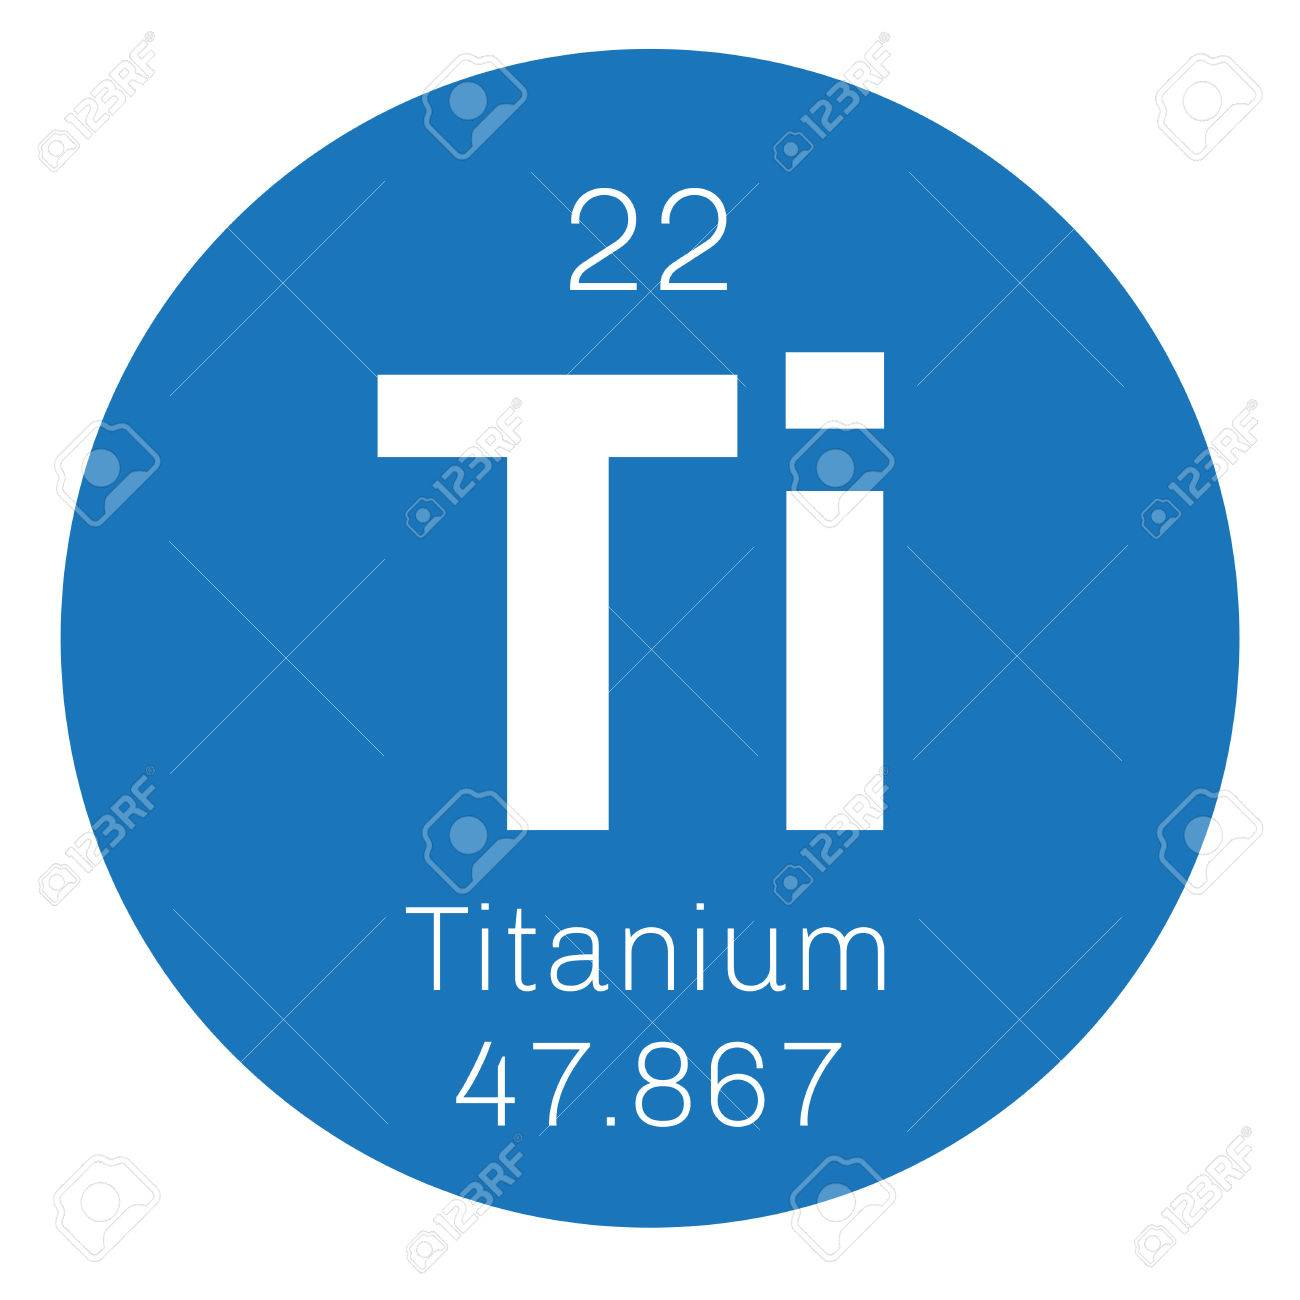 Titanium chemical element transition metal of high strength titanium chemical element transition metal of high strength colored icon with atomic number and urtaz Choice Image